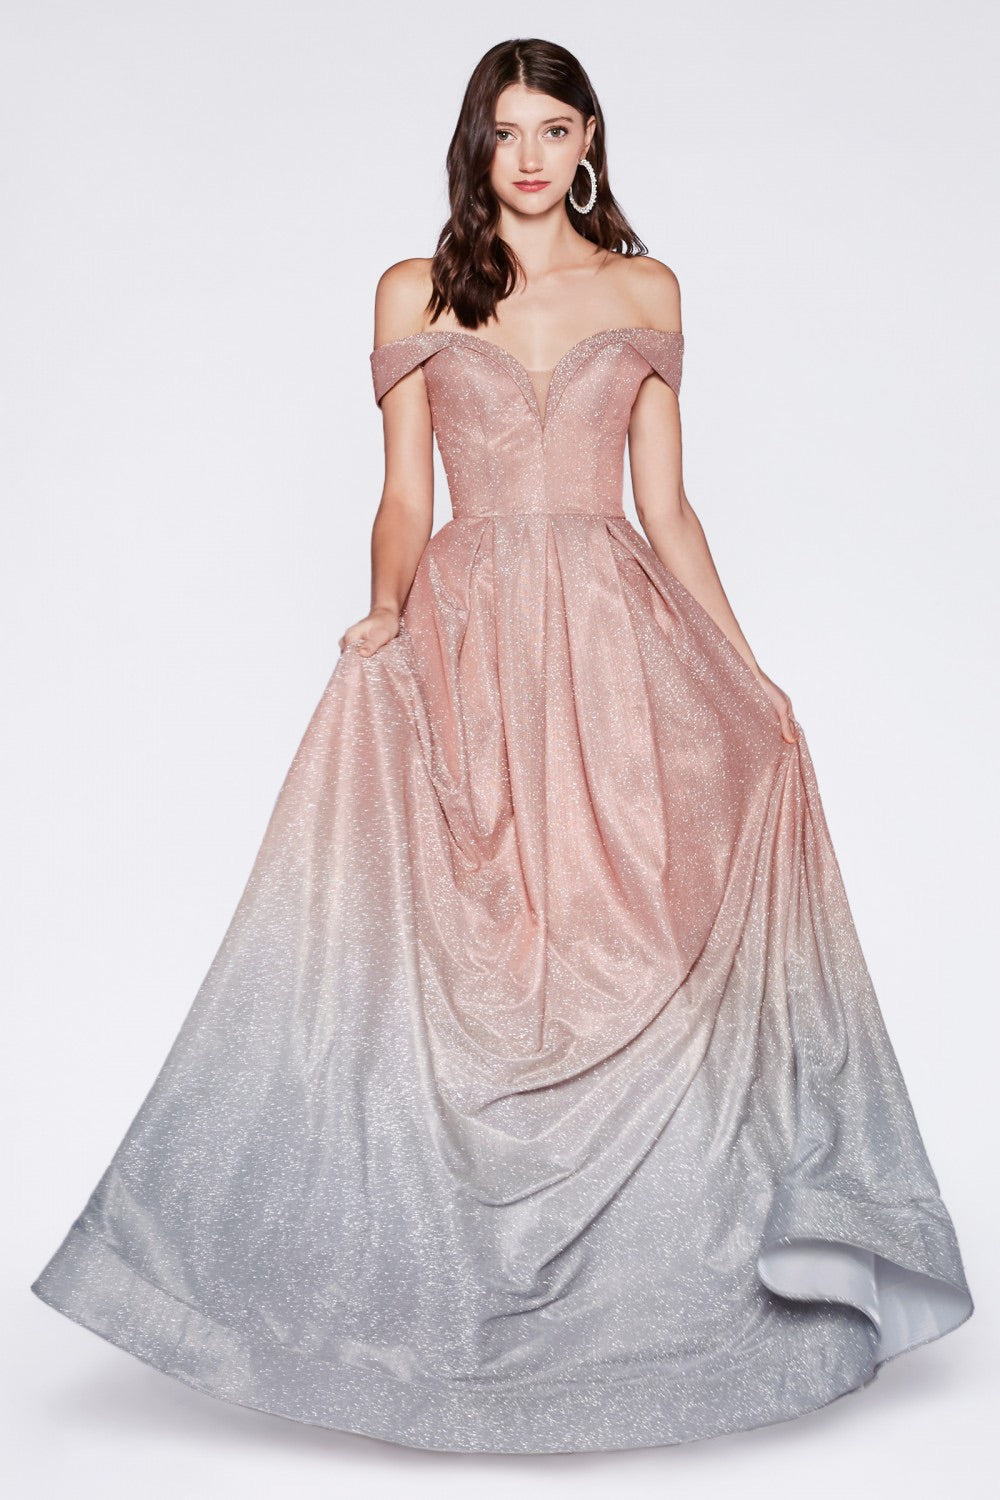 Cinderella Divine CR839 Off Shoulder A-Line Evening Dress - CYC Boutique